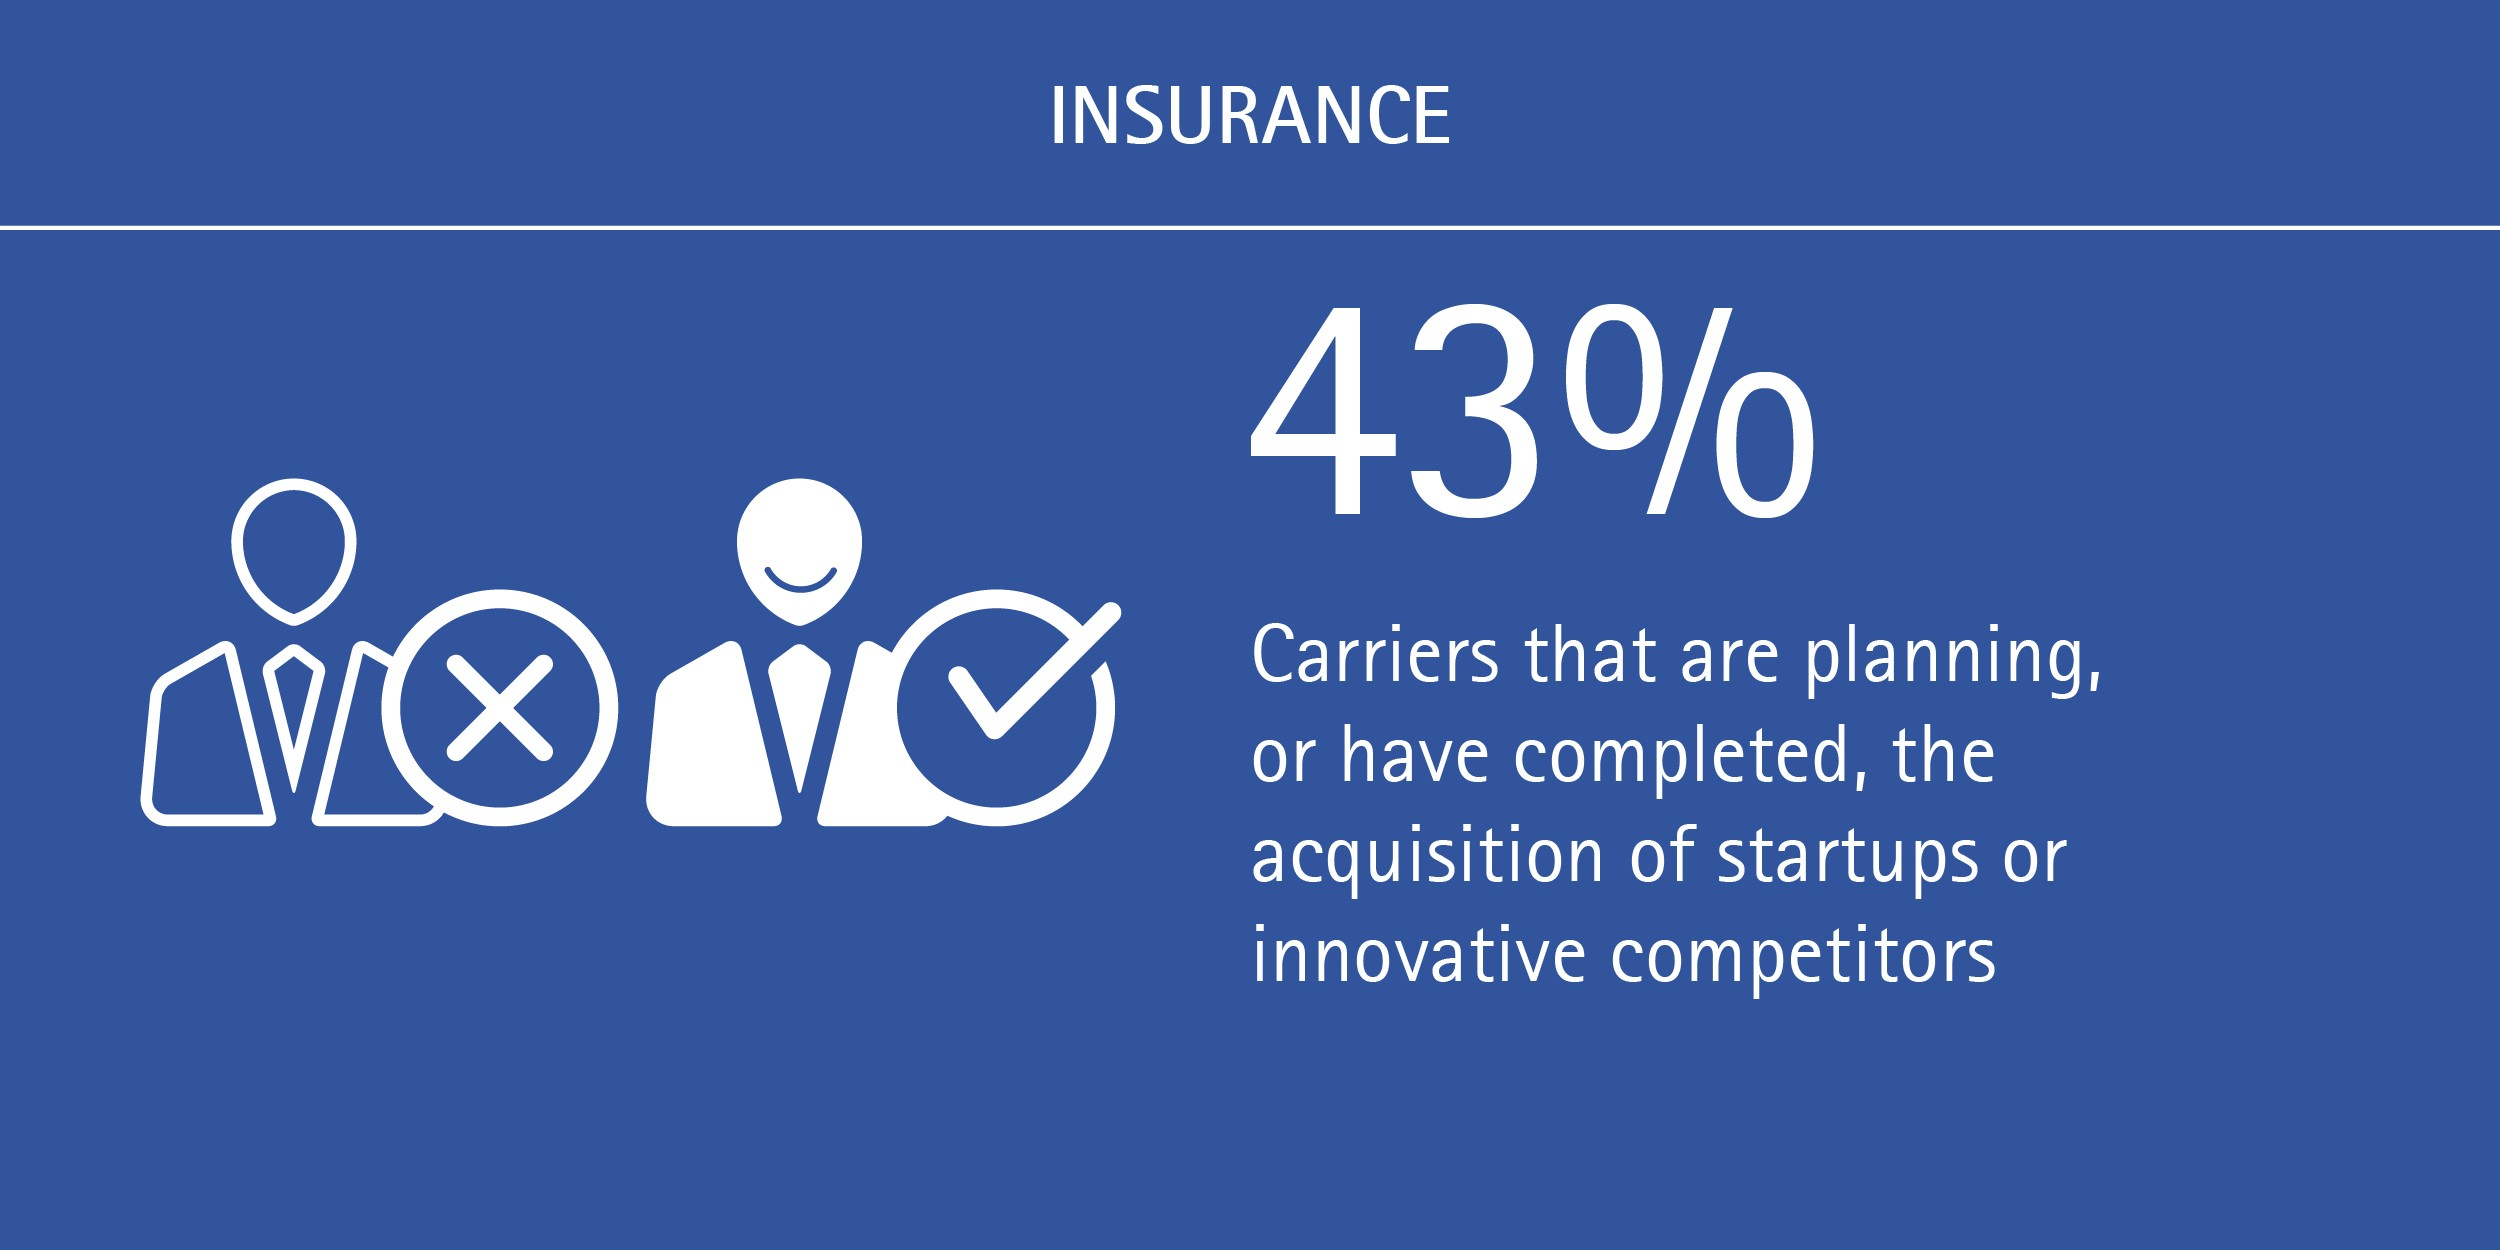 Define a win-win partnership model in the new insurance distribution ecosystem